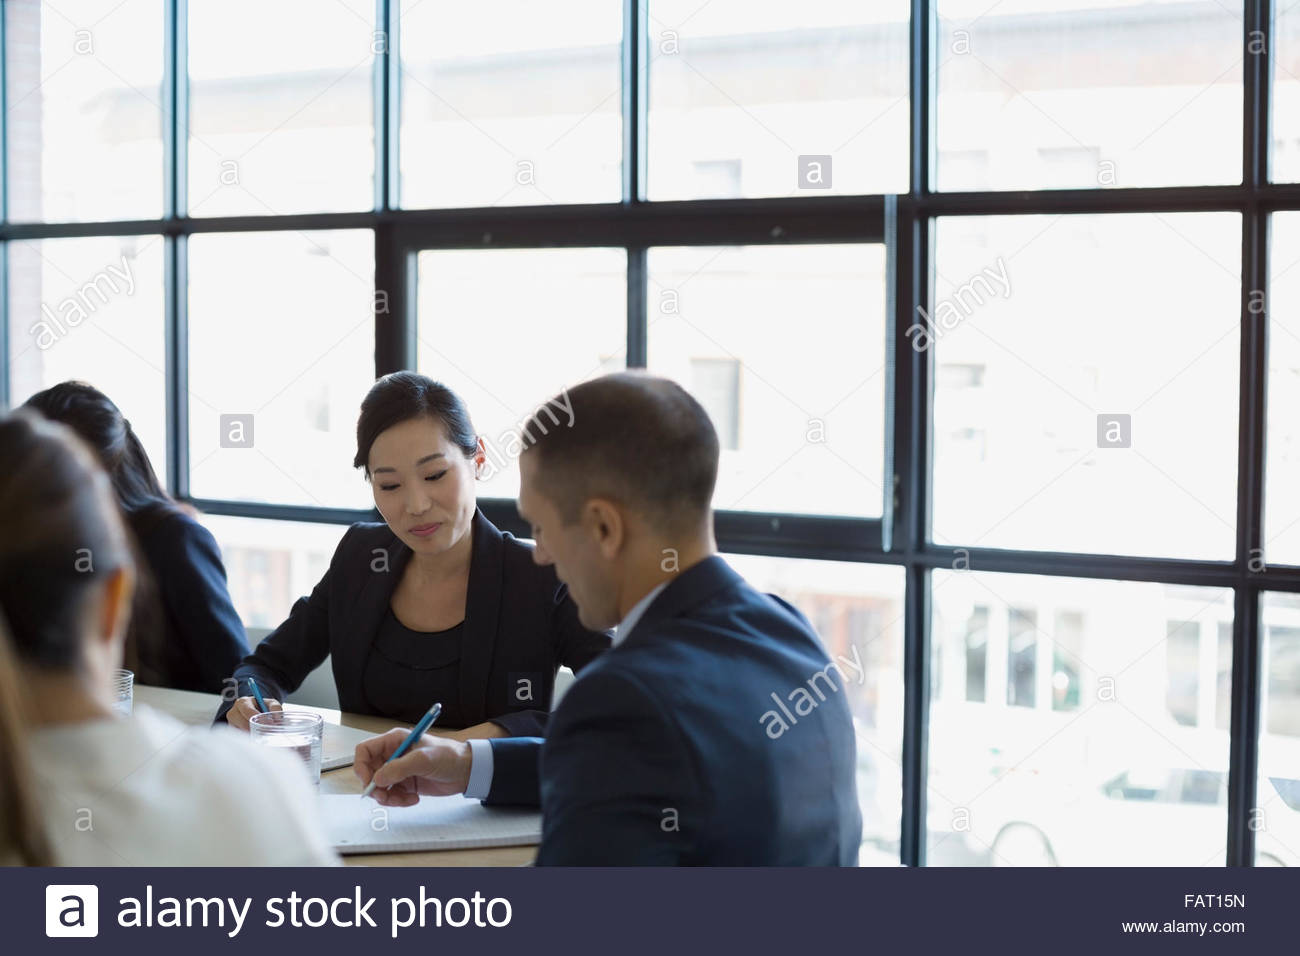 Business people planning in conference room meeting - Stock Image